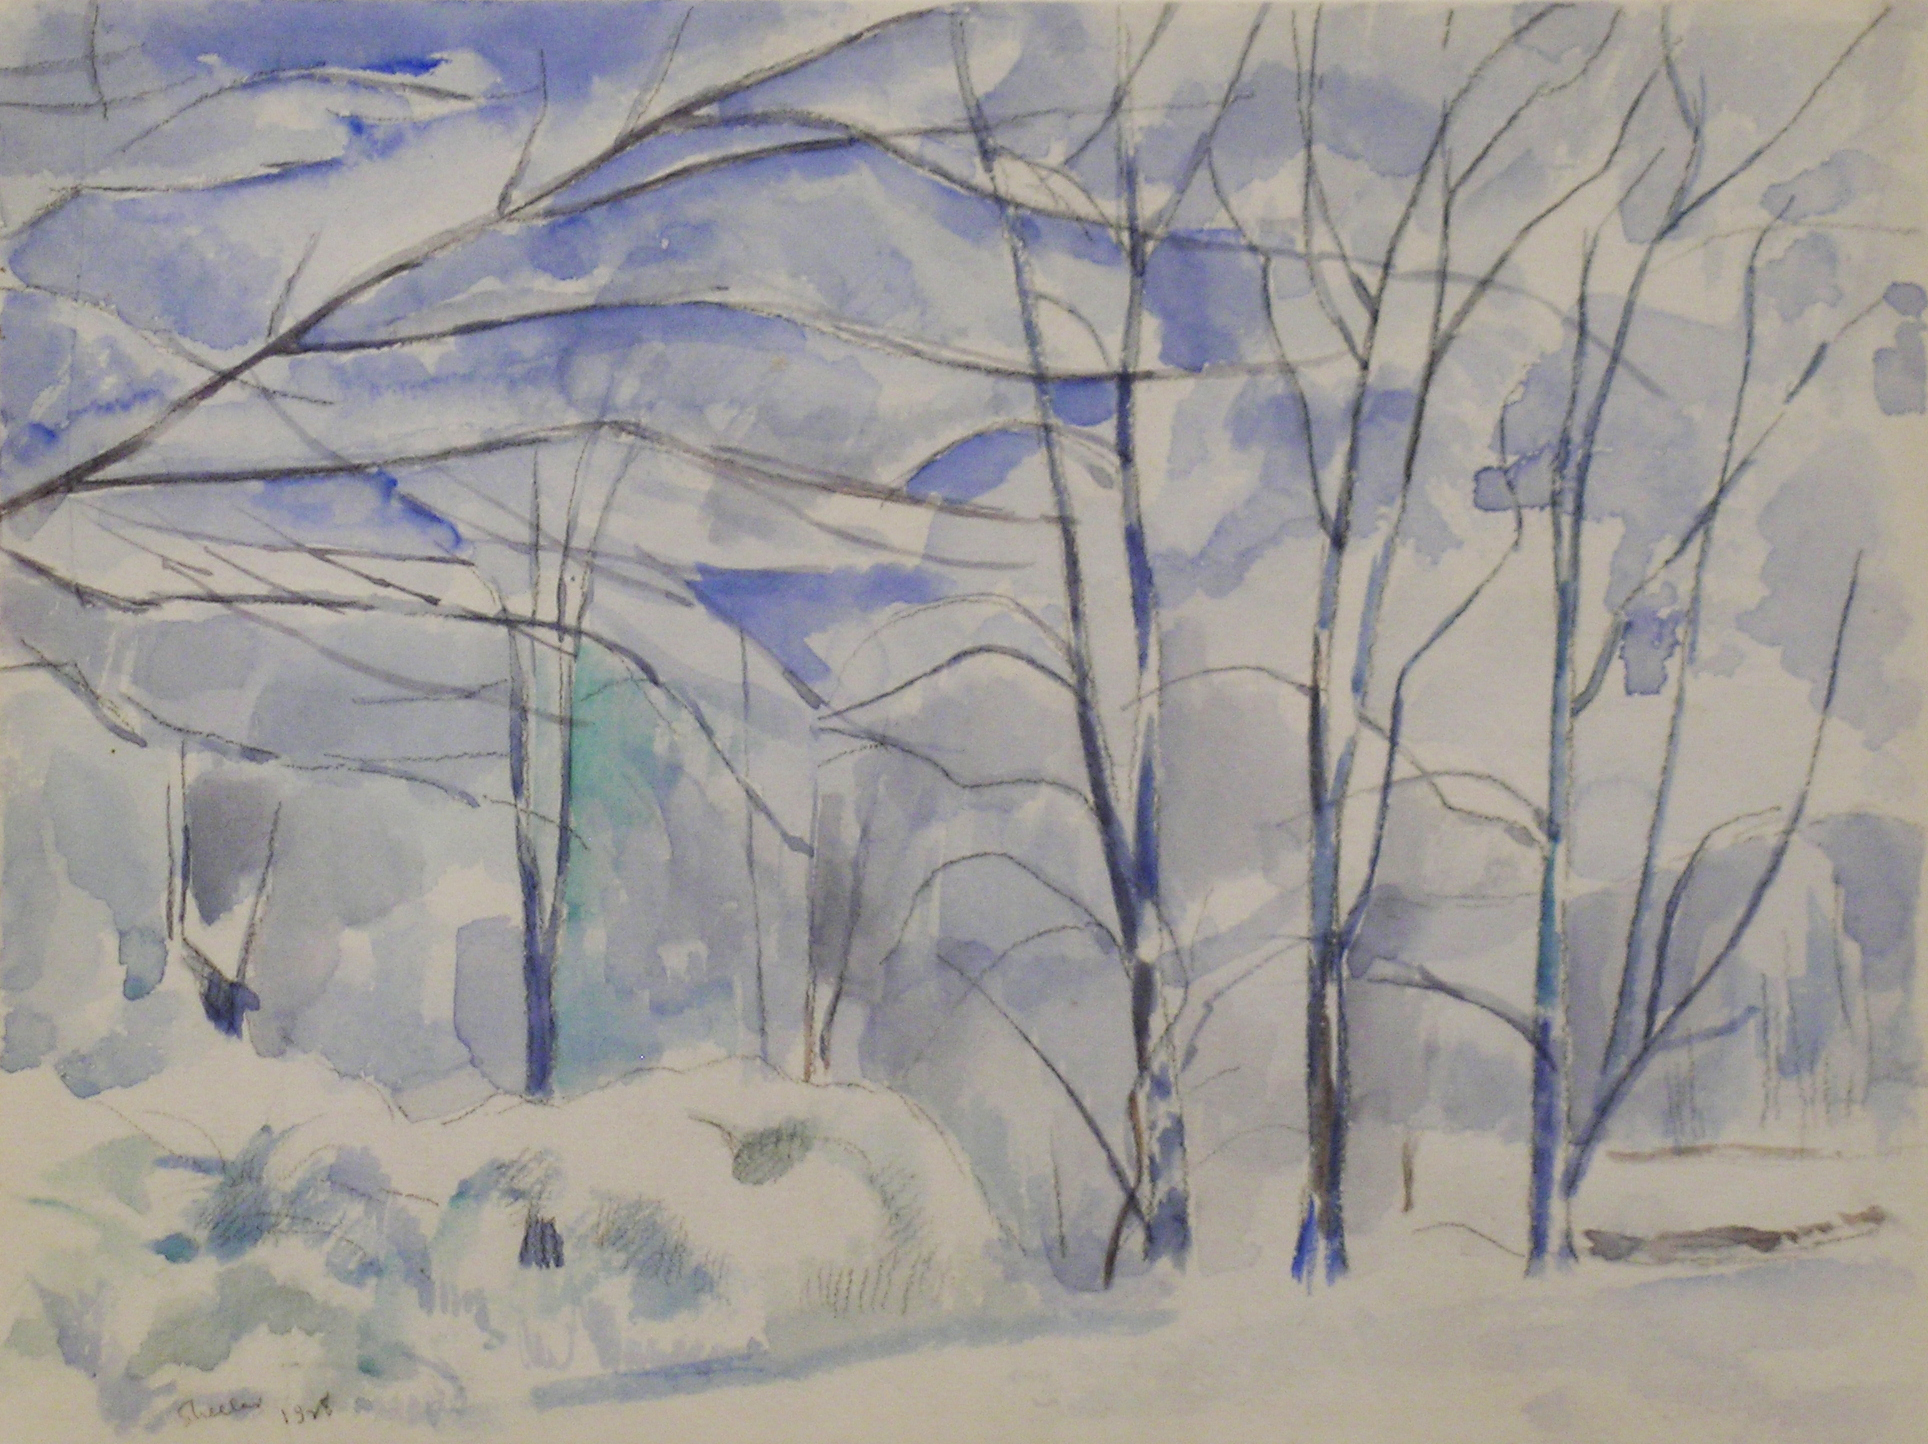 Charles Sheeler   Winter Landscape, 1928 ink & pencil on paper, 9 x 11 1/2 inches